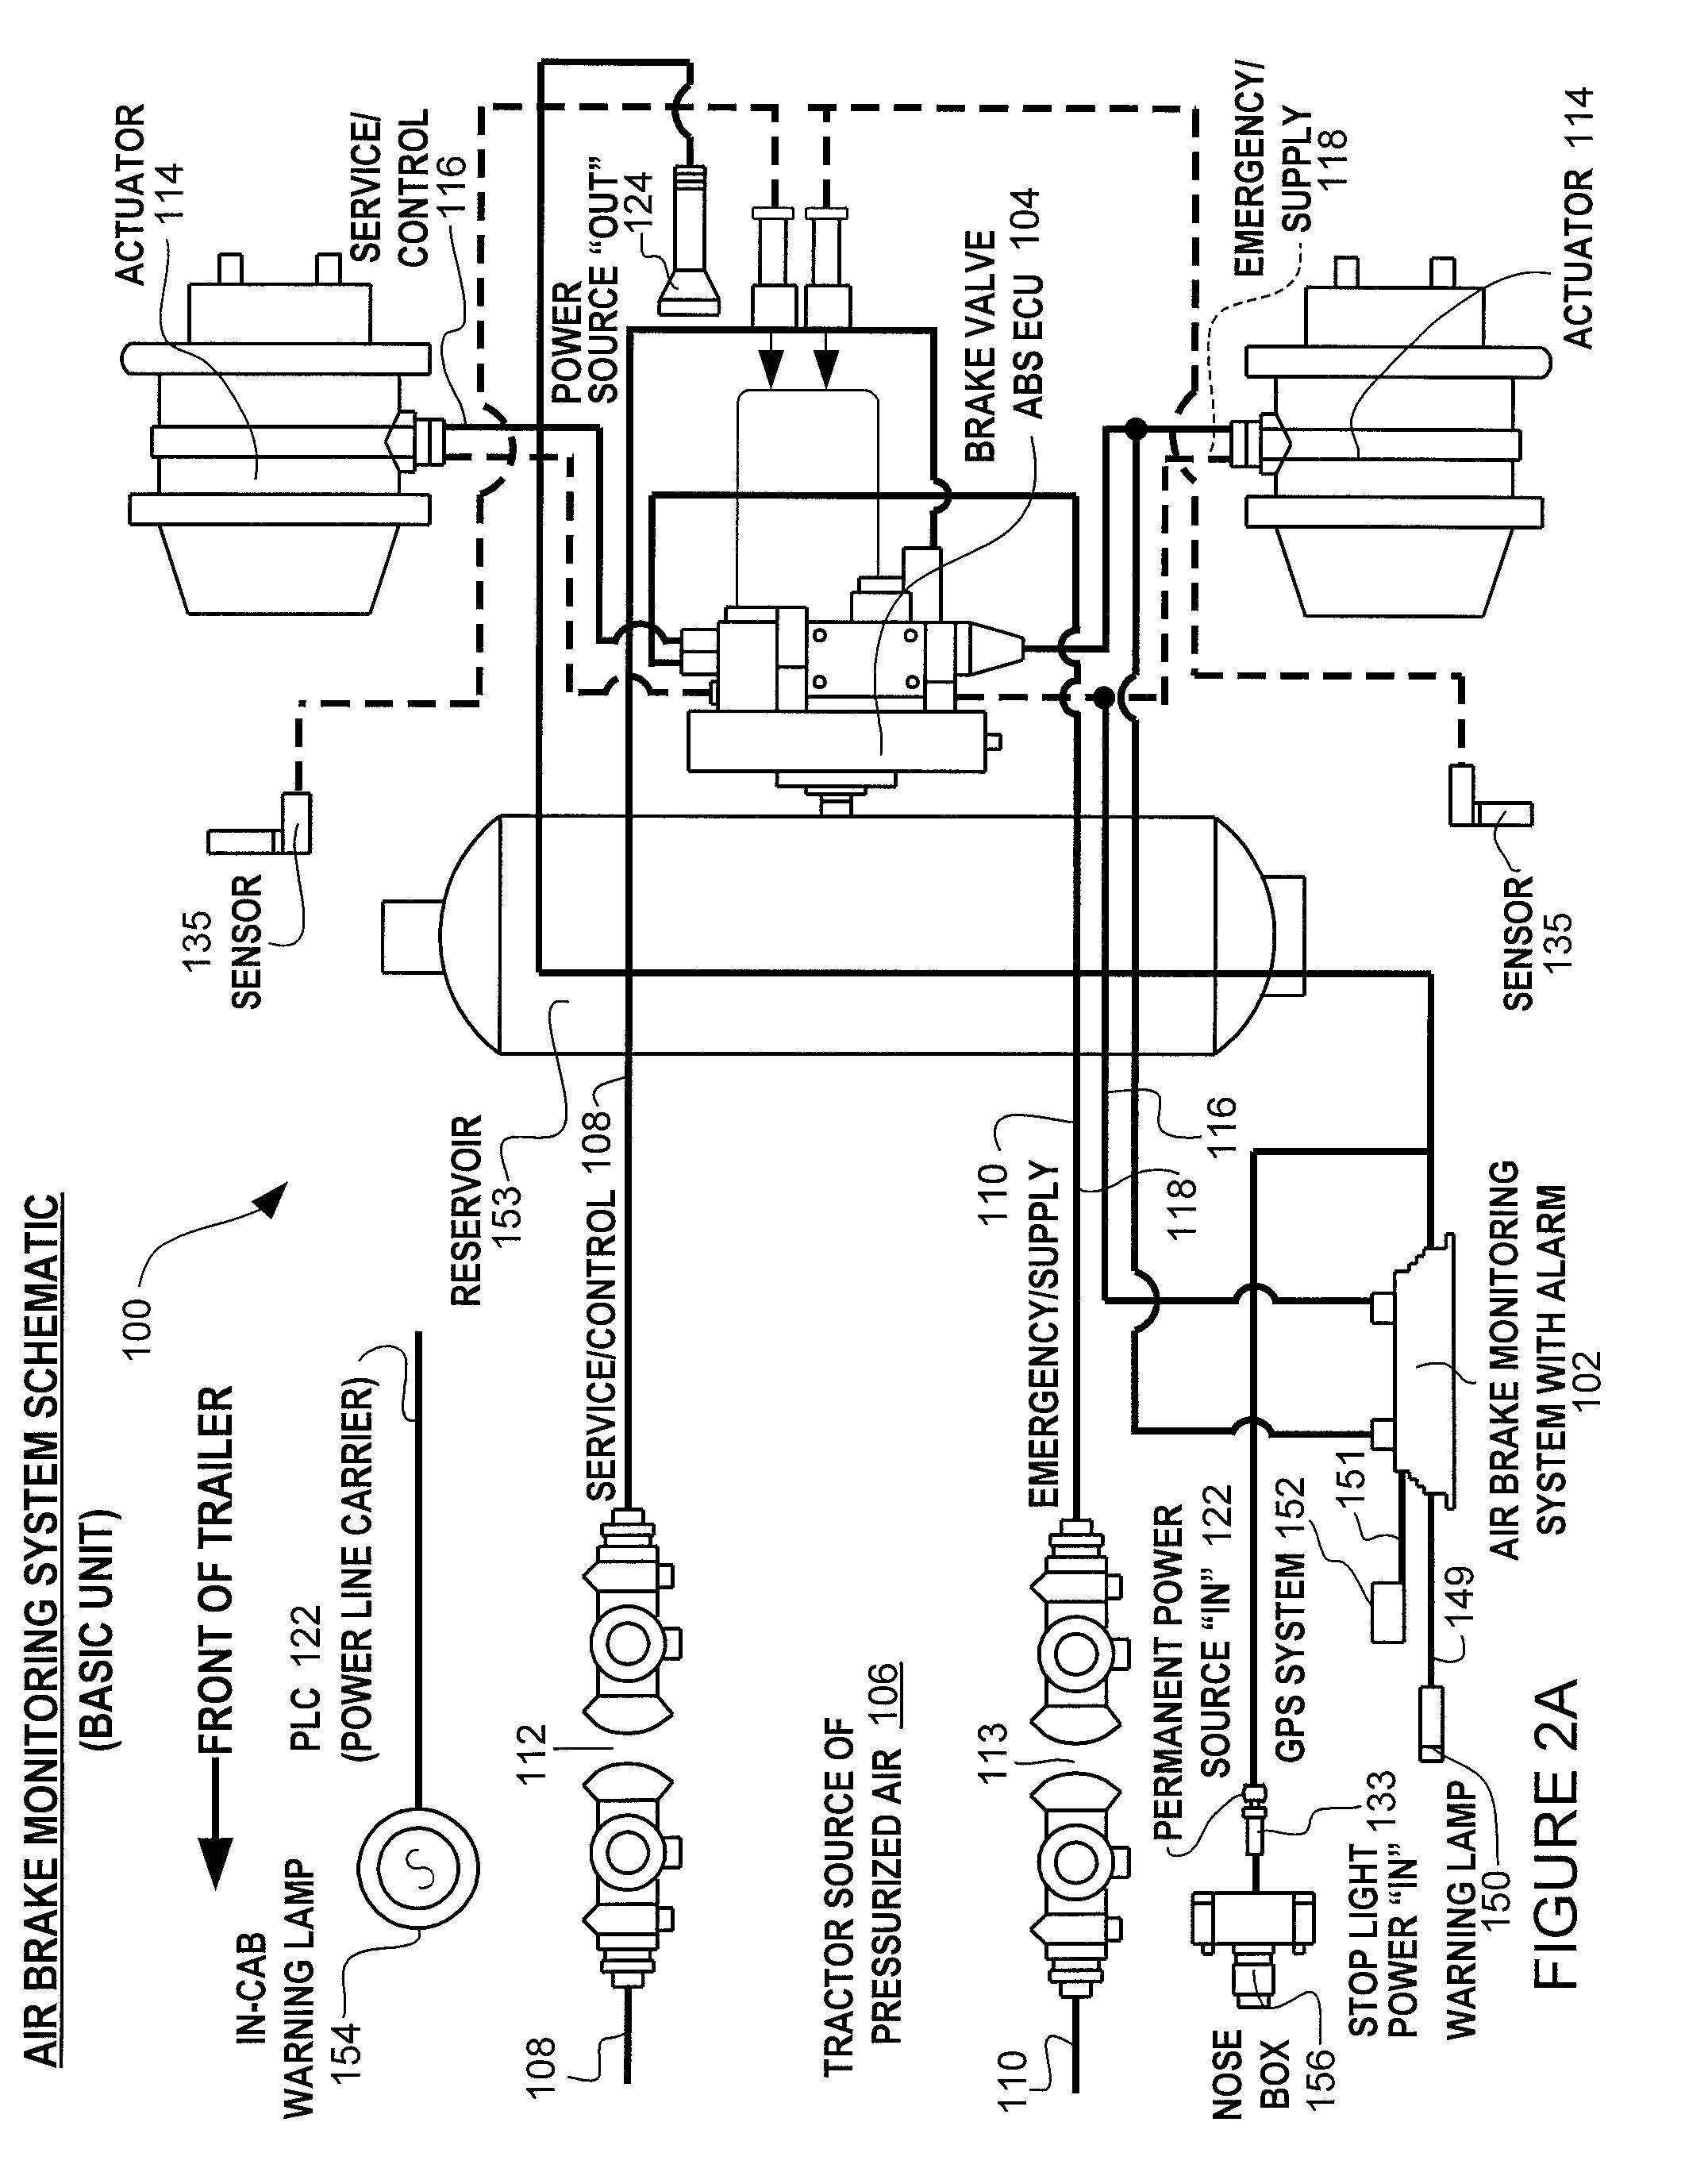 wabco valve wiring diagram camizu org 2007 ford f350 fuse box diagram